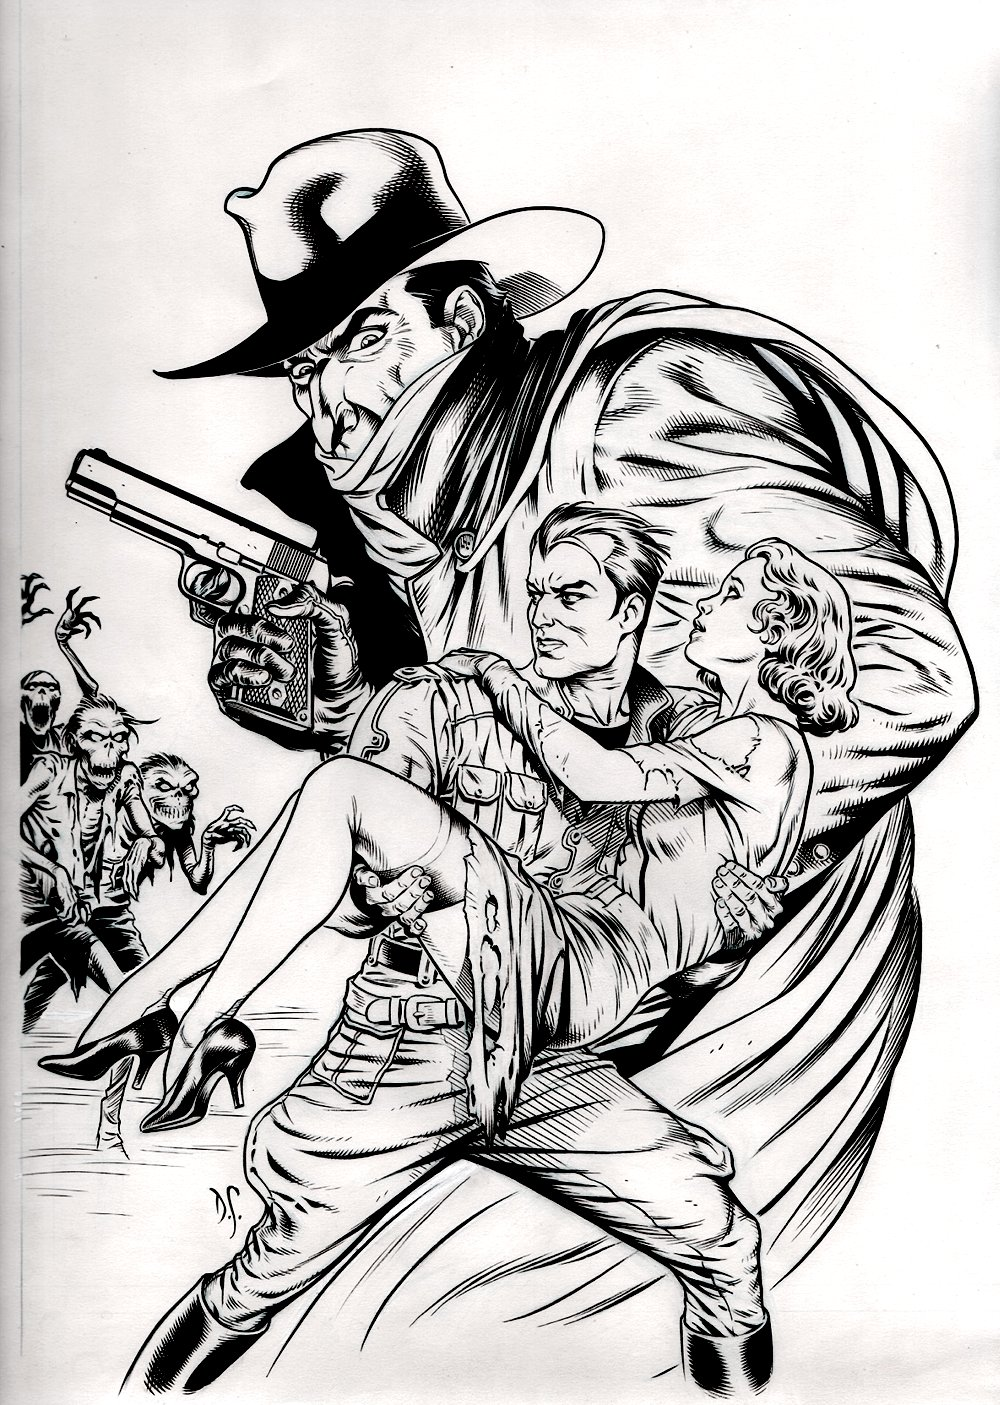 The Shadow and Doc Savage #1 Published Cover (1995)